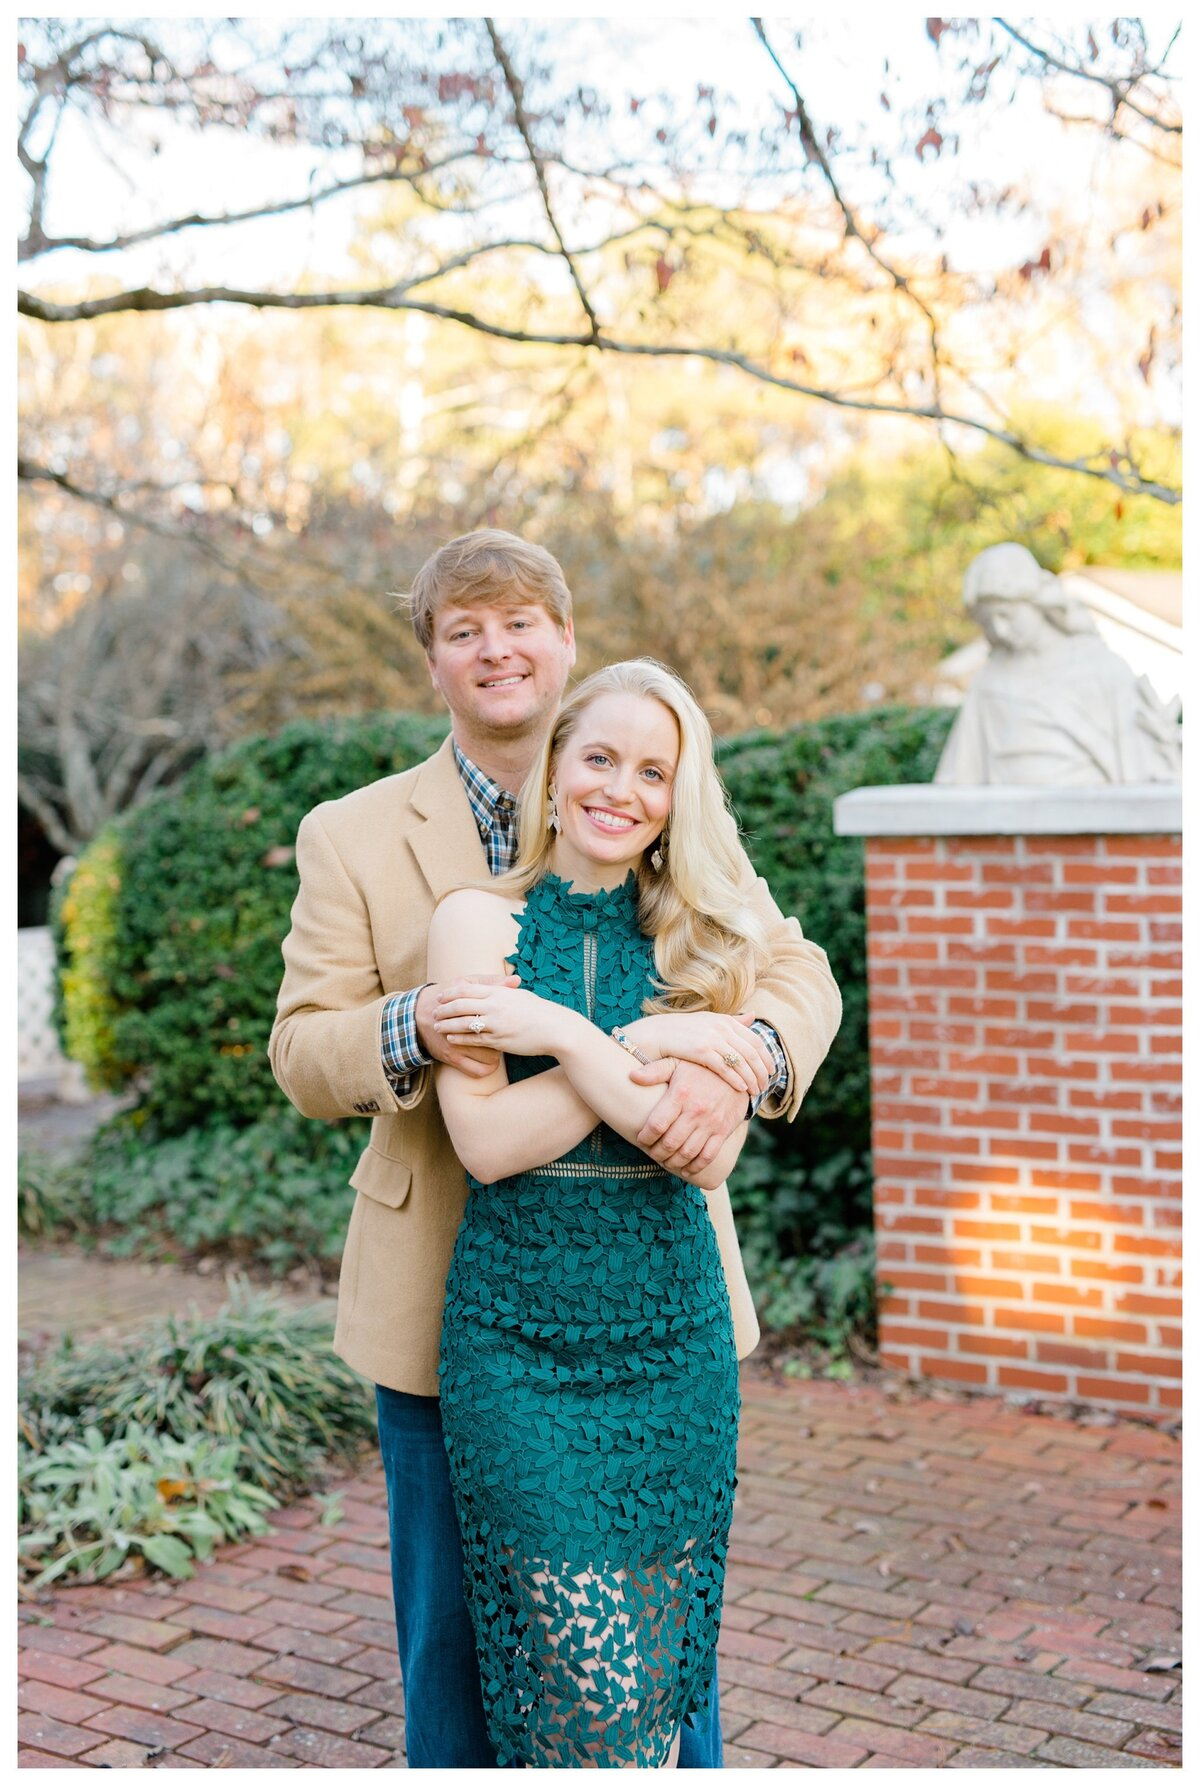 canady-engagements-atlanta-wedding-photographer-23